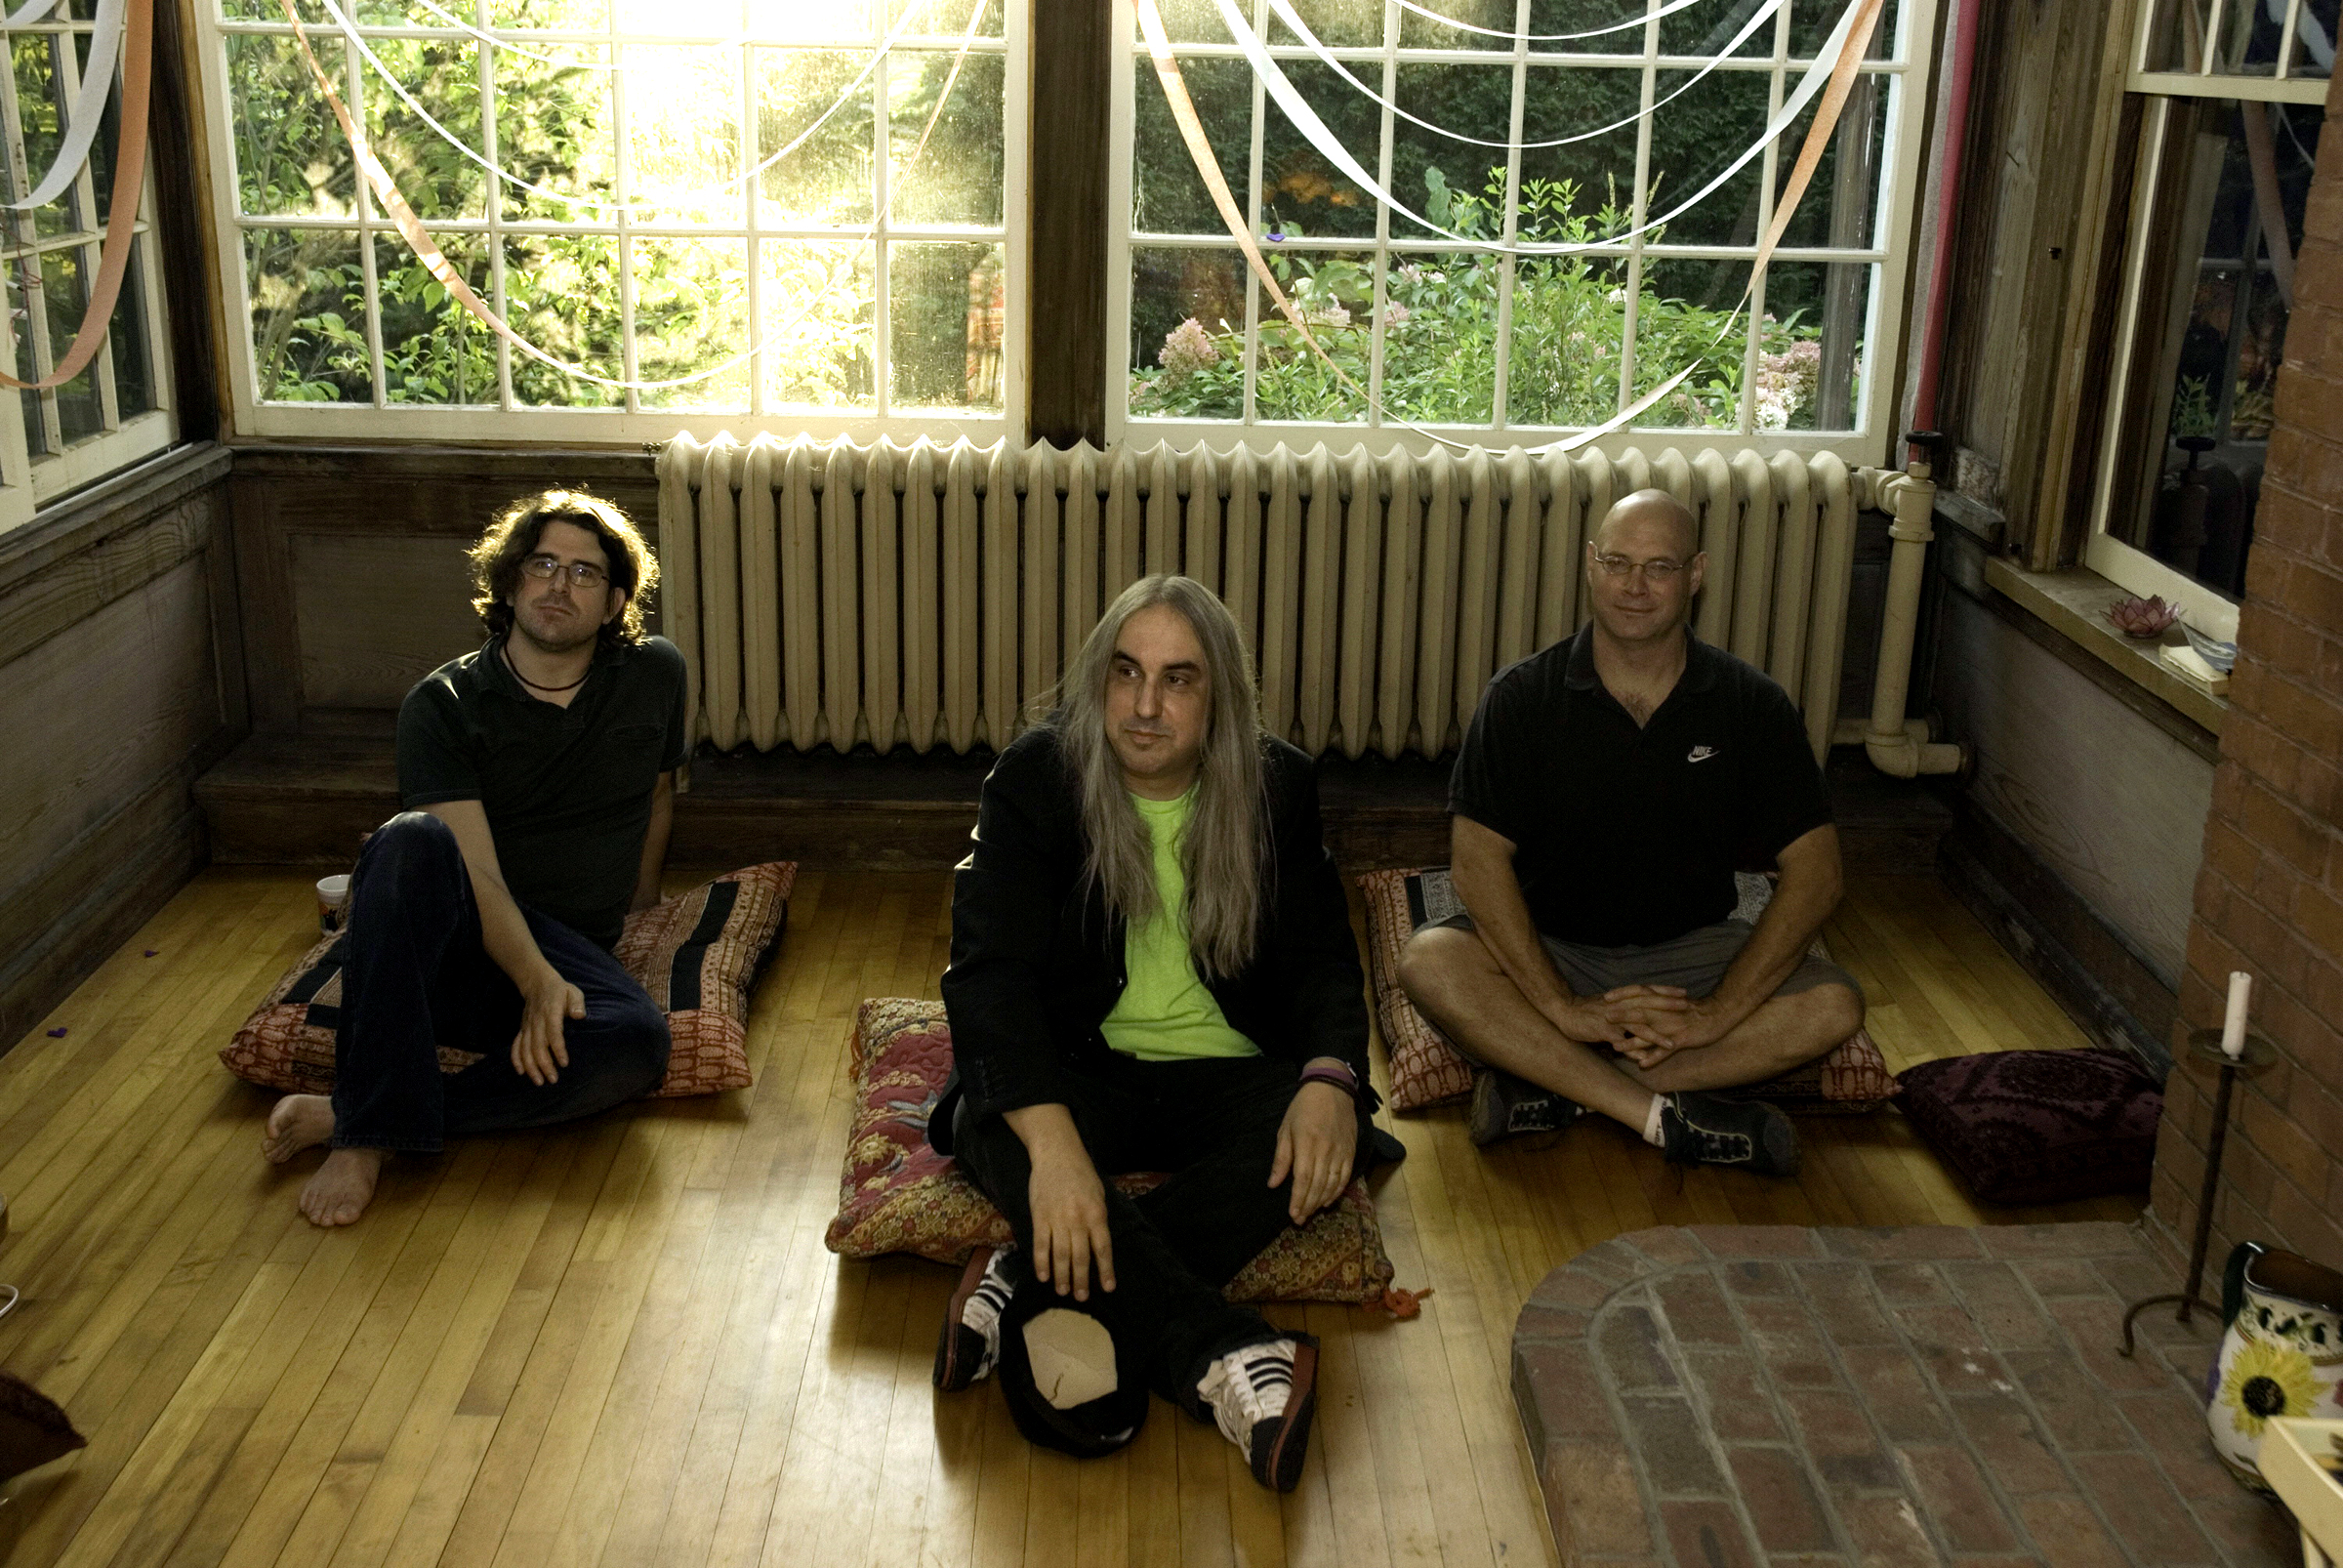 Dinosaur Jr. – Video for 'Watch the Corners' starring Tim Heidecker